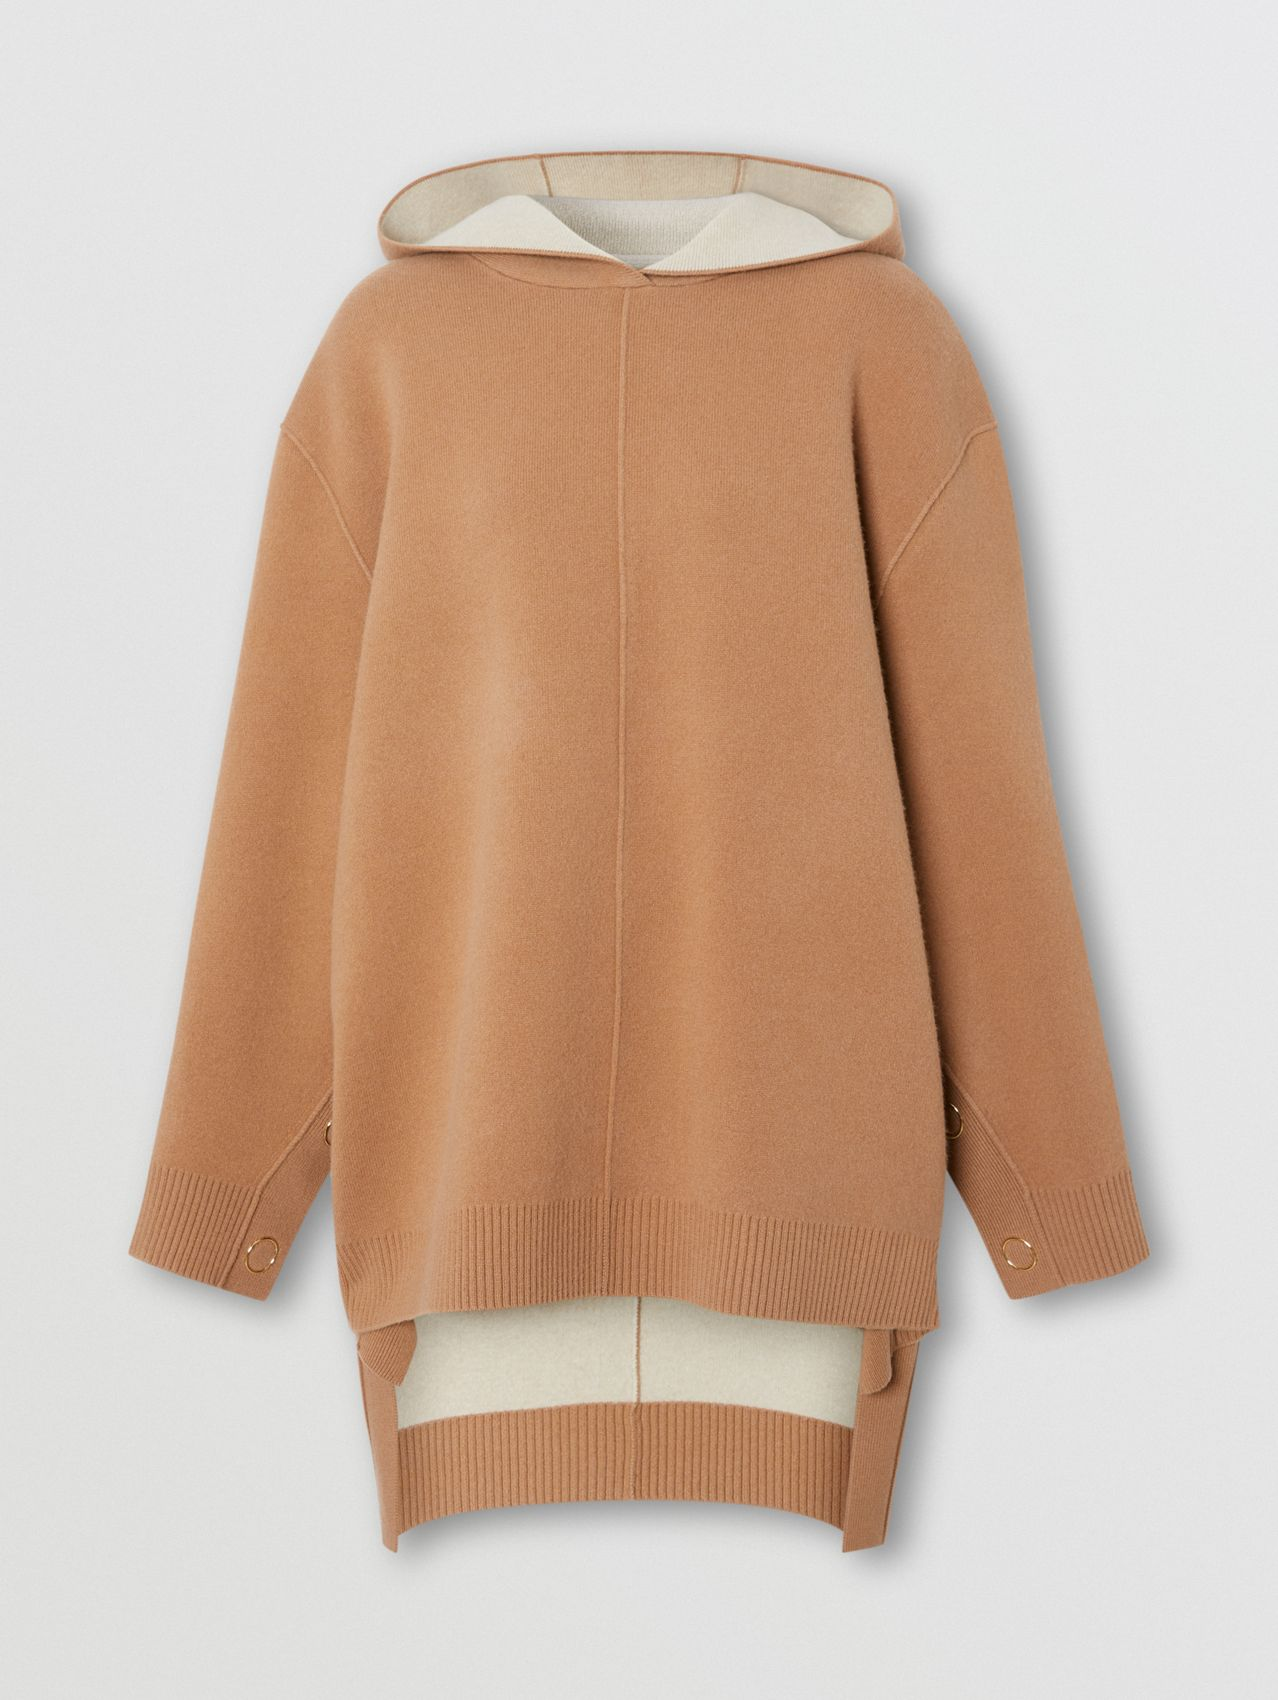 Double-faced Wool Cashmere Blend Hoodie in Warm Camel